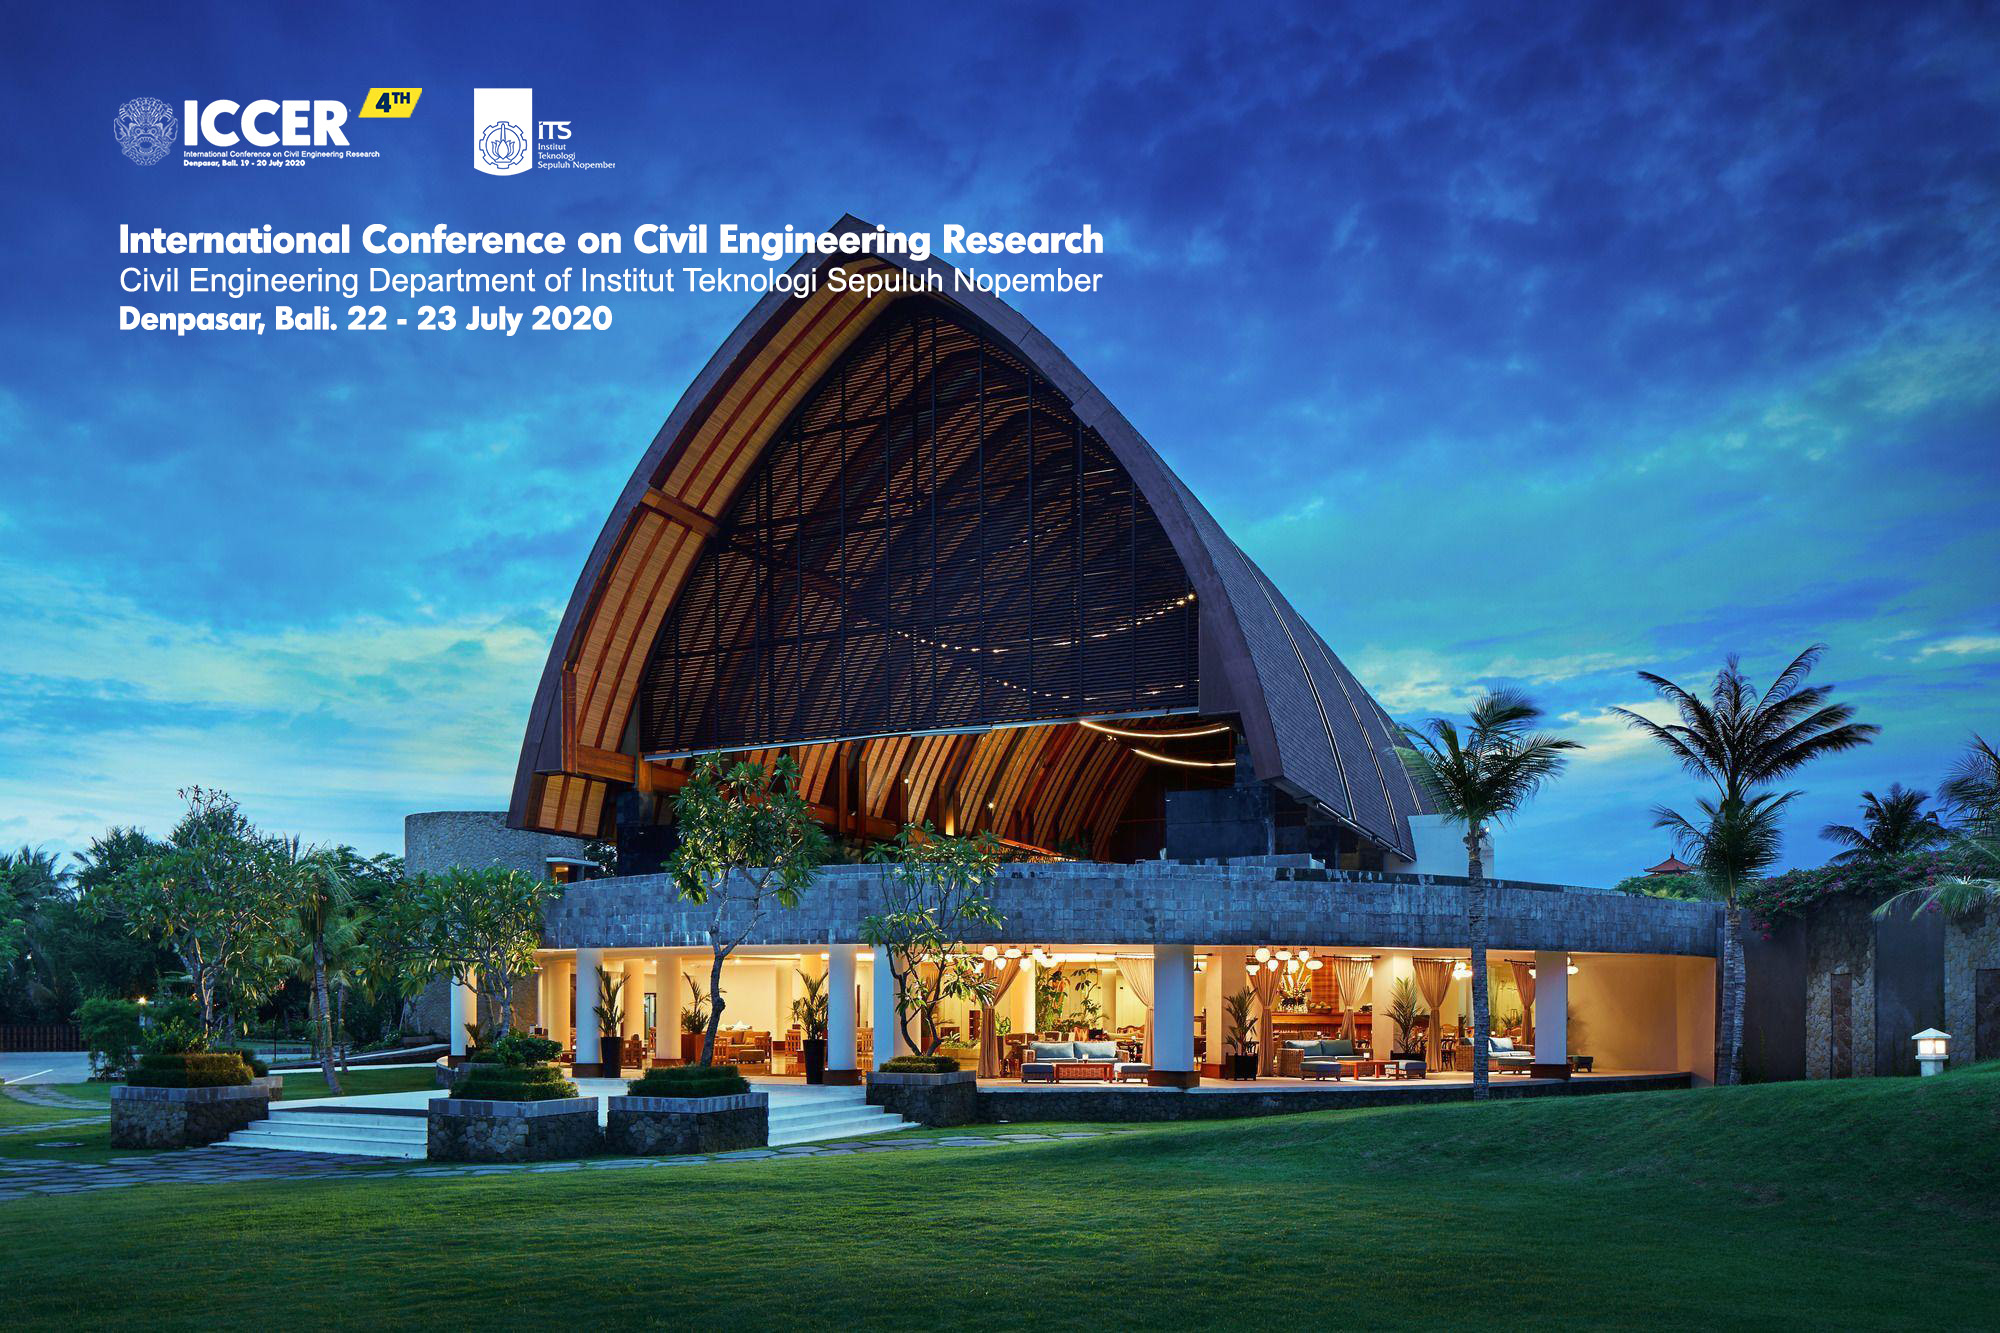 The 4TH International Conference on Civil Engineering Research (ICCER)